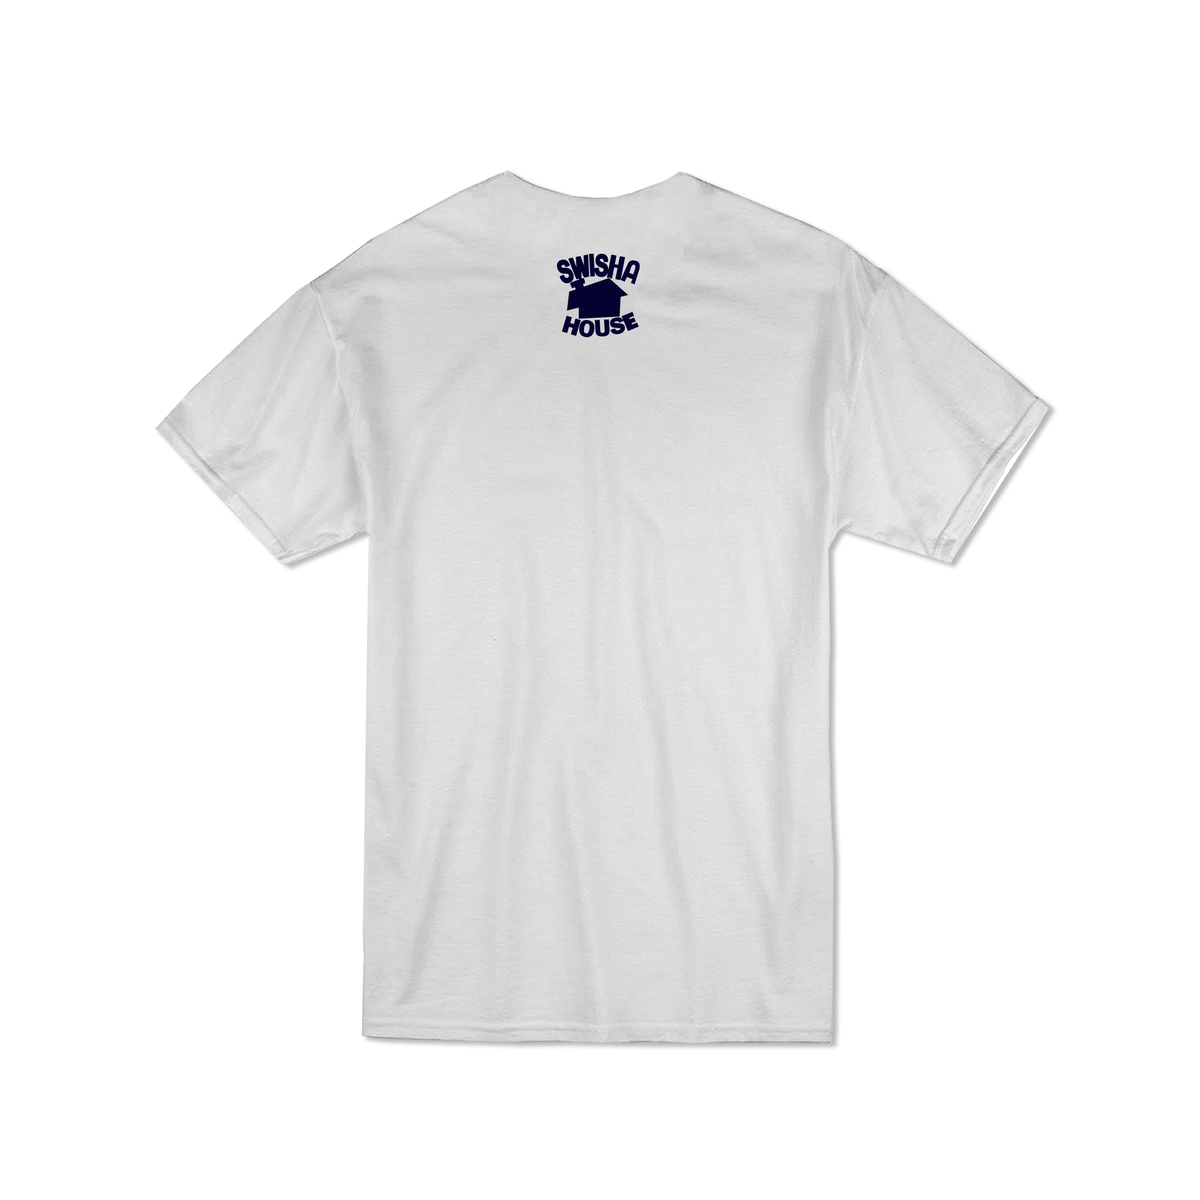 Image of SH Limited Edition White #Take It Back T